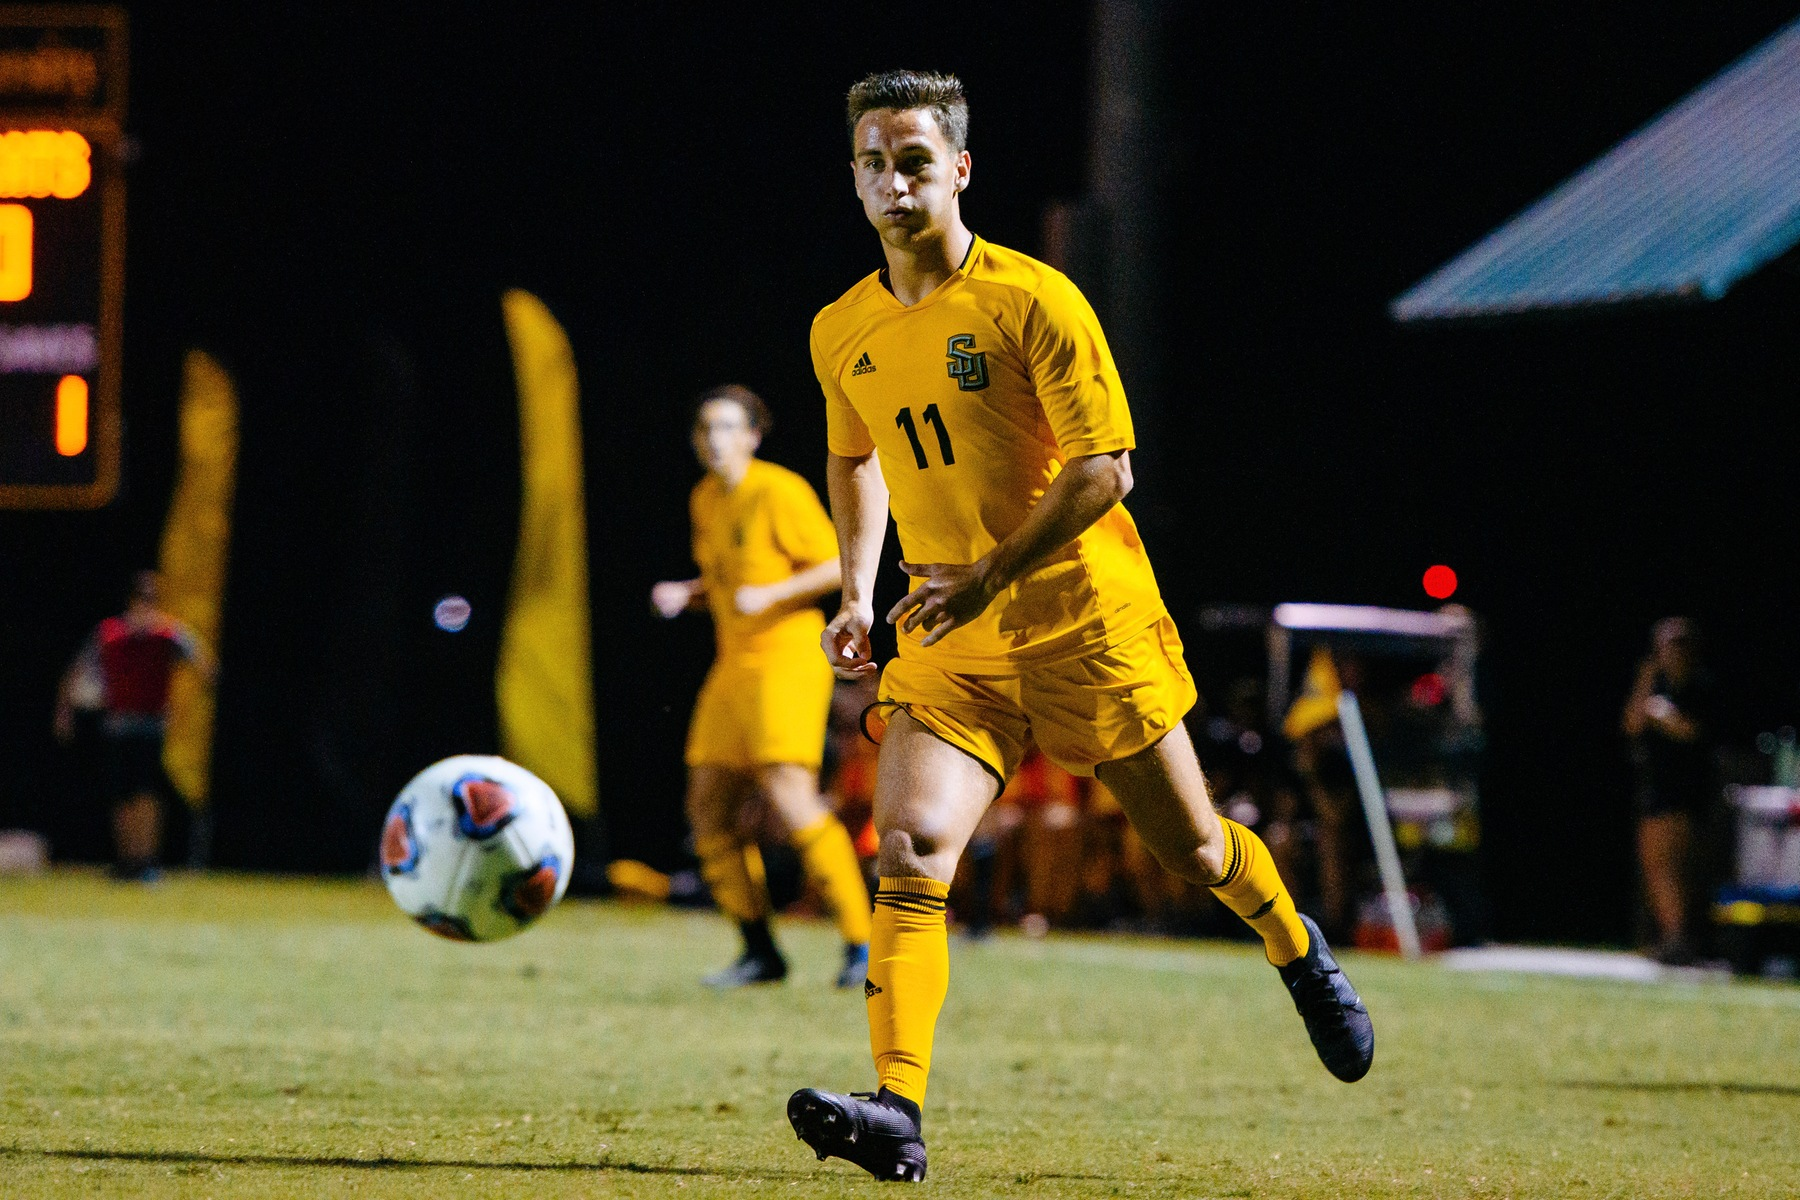 Seth Holzmann's Two Goals and Assist Leads Men's Soccer Past Colorado College